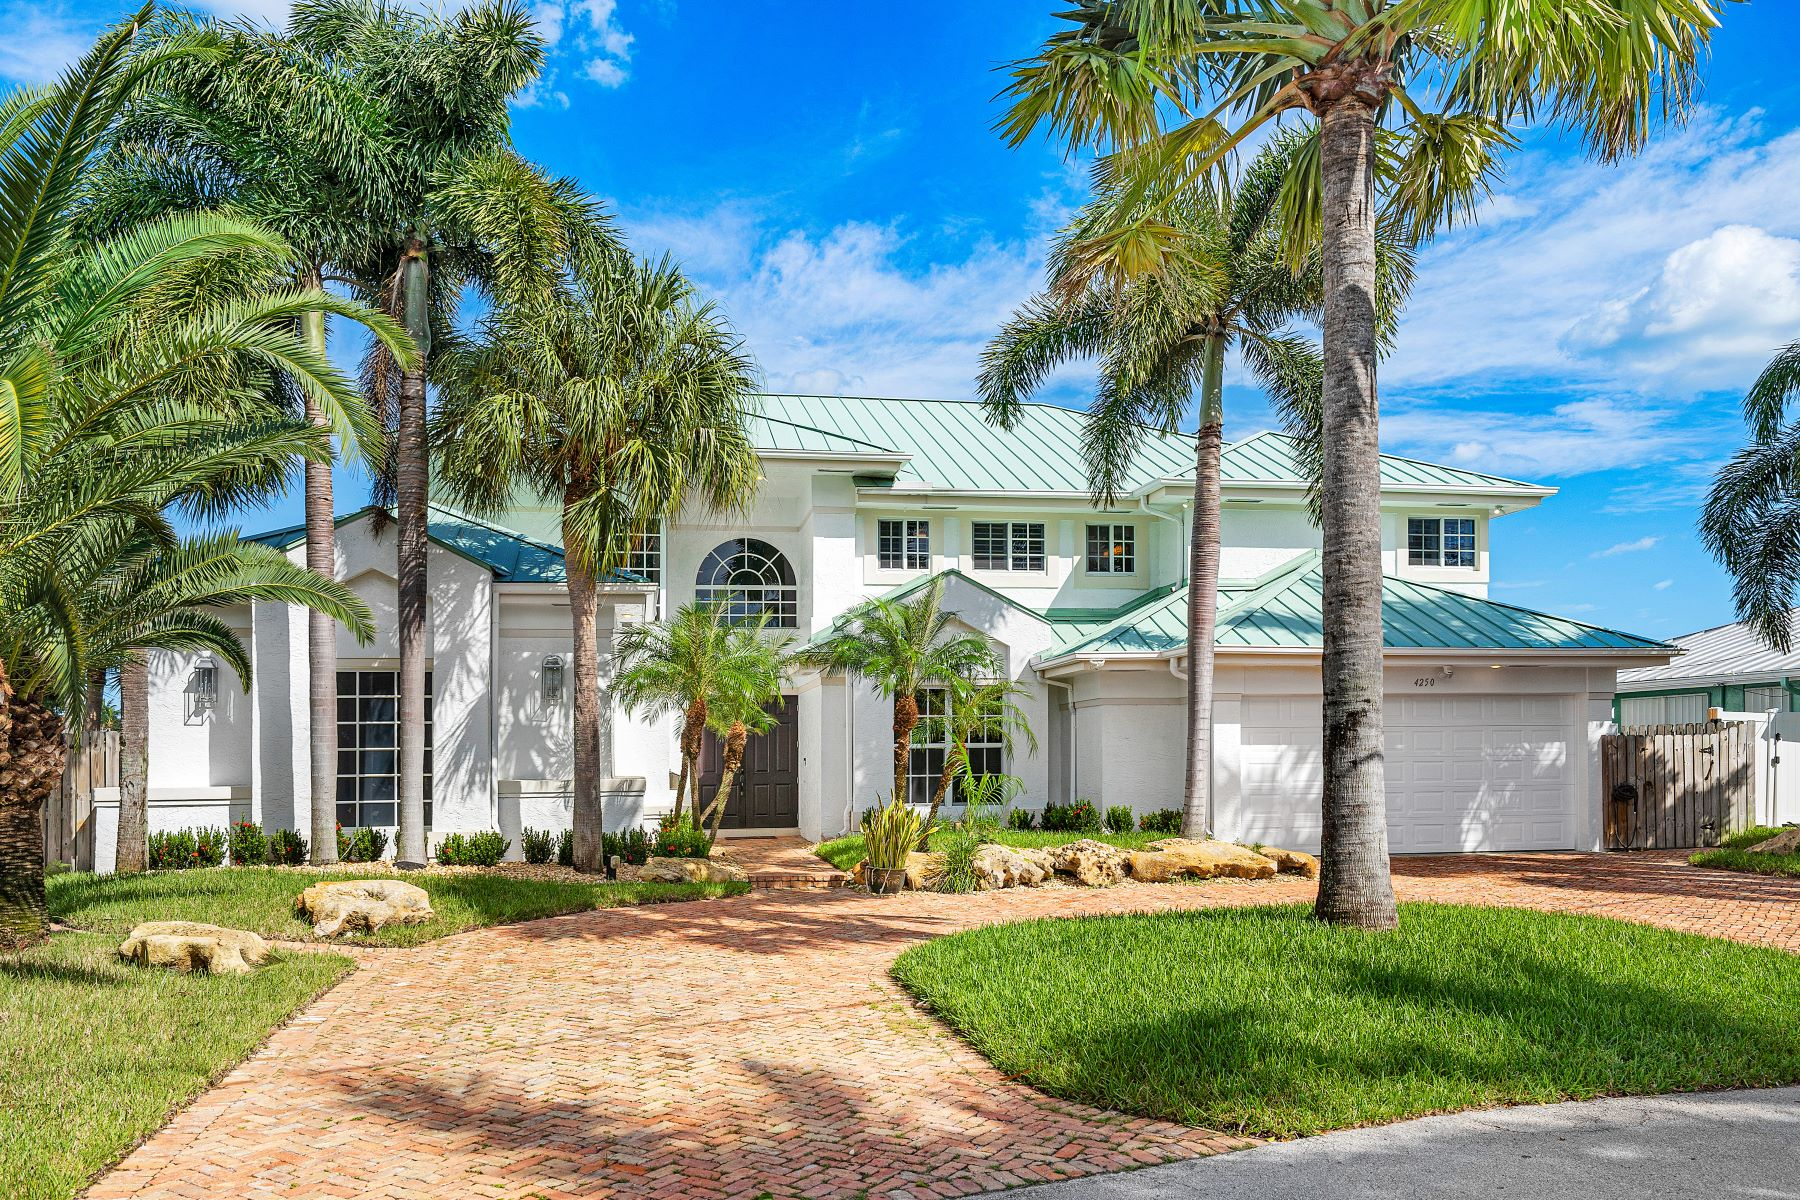 Single Family Homes for Sale at Lighthouse Point, Florida 33064 United States